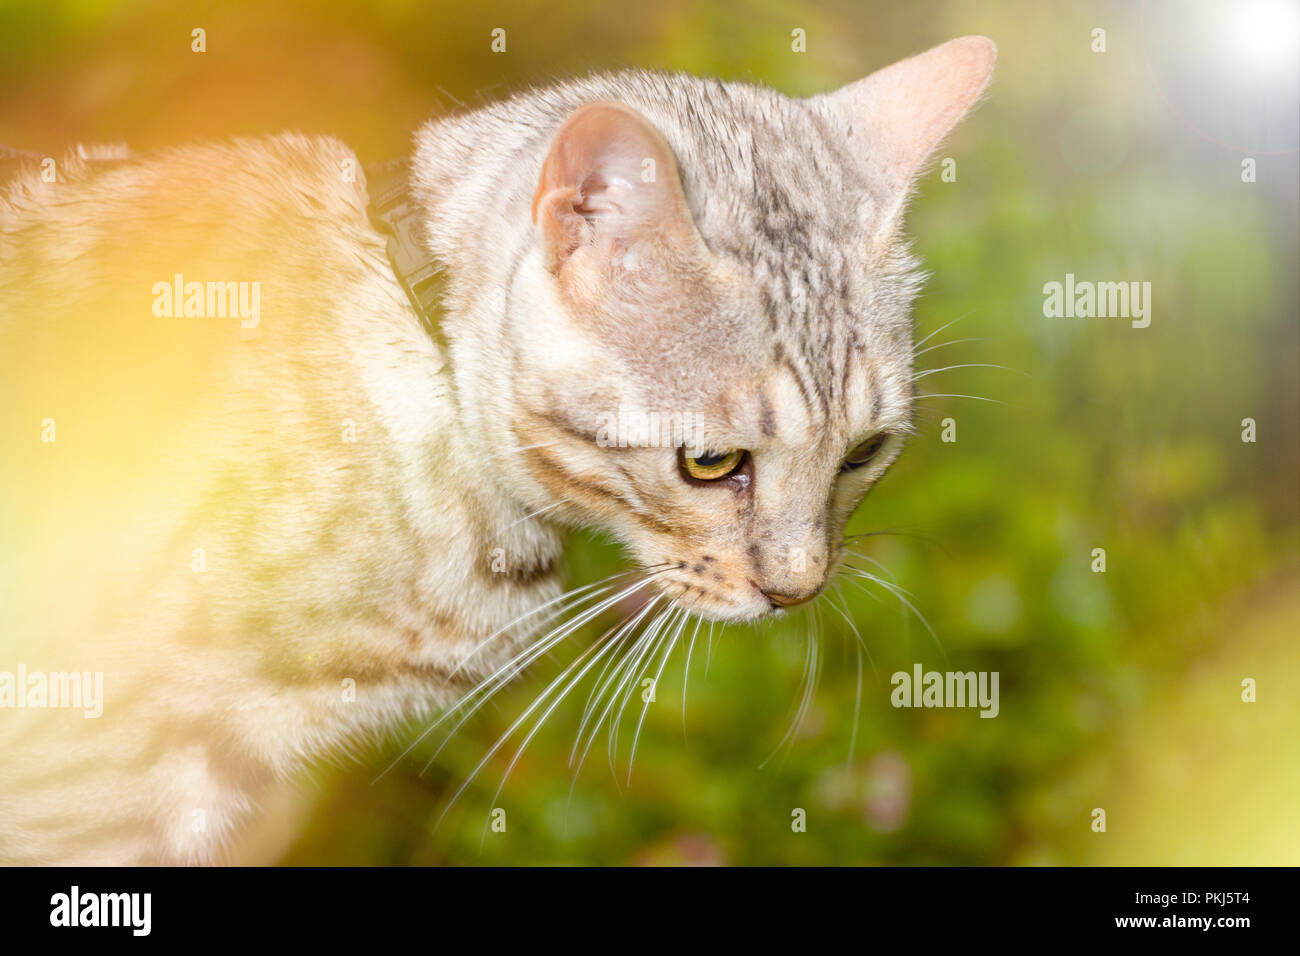 Beautiful male silver Bengal cat kitten portrait outdoors with sun flare - Stock Image